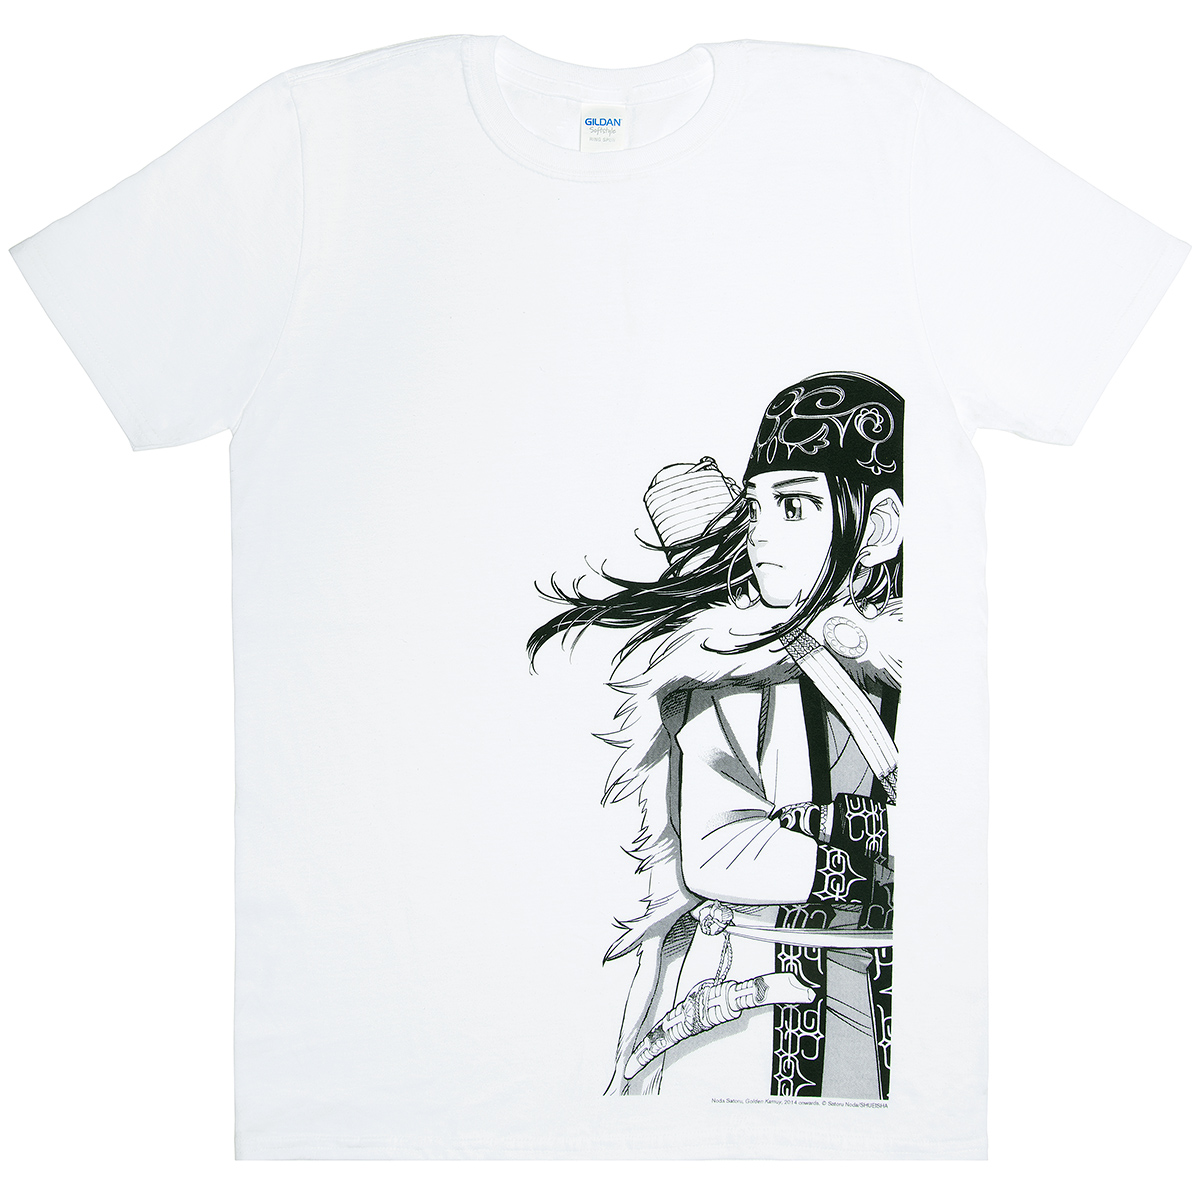 Golden Kamuy t-shirt (XL)